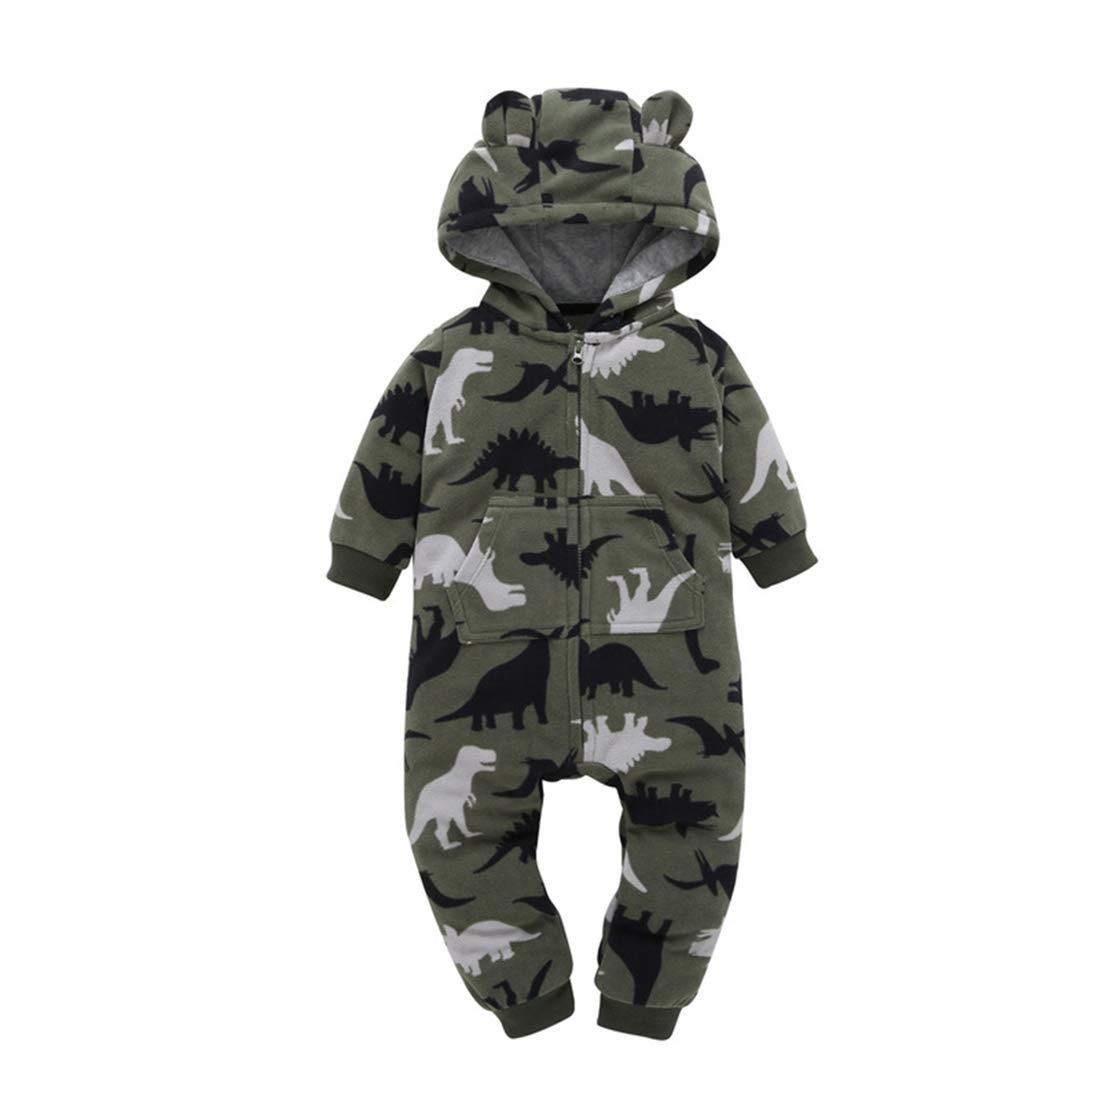 ALLAIBB Newborn Baby Boy Winter Warm Romper Jumpsuit Outfit Hooded Outerwear